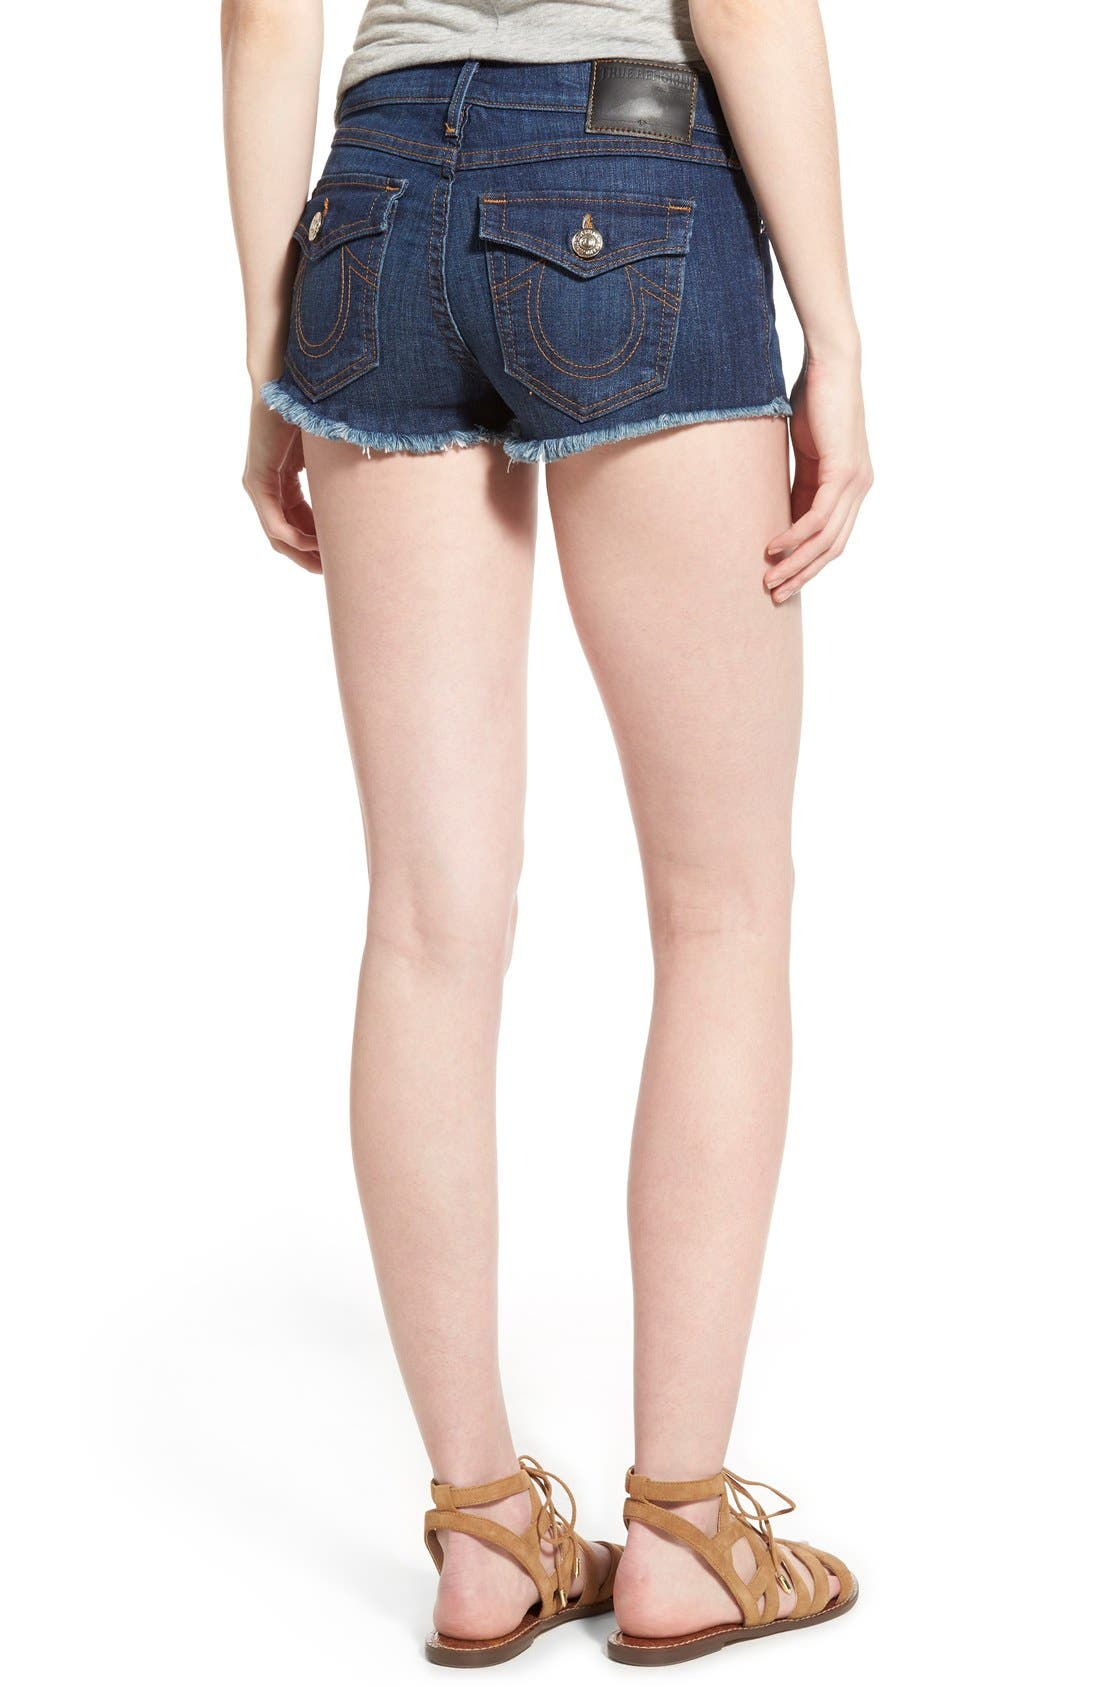 Joey Flap Pocket Cutoff Denim Shorts,                             Alternate thumbnail 2, color,                             Worn Vintage